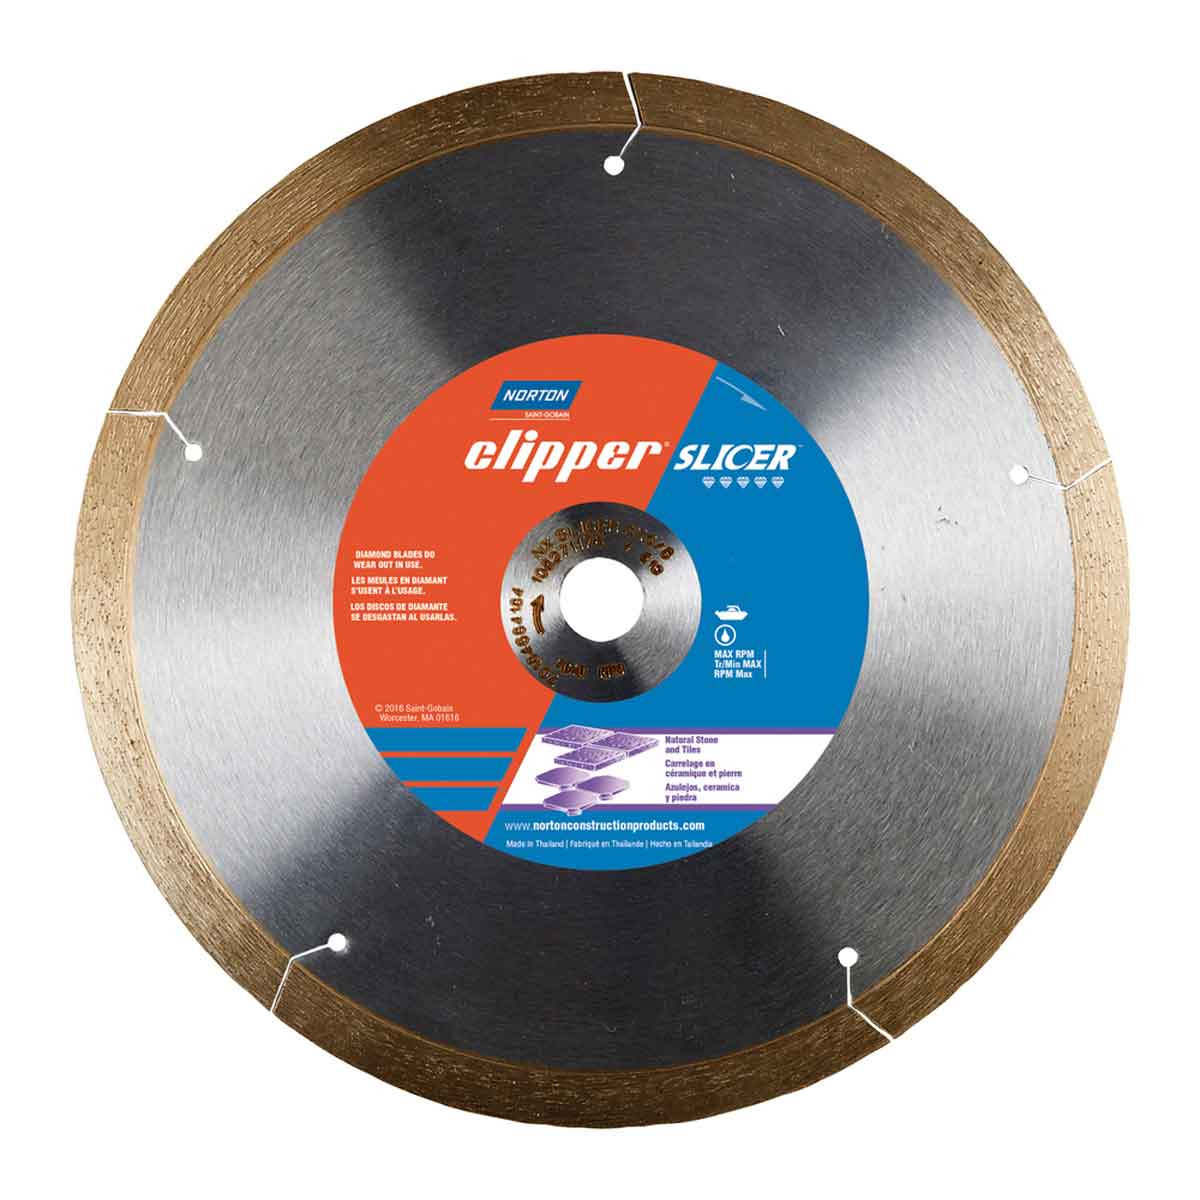 norton clipper slicer diamond blade